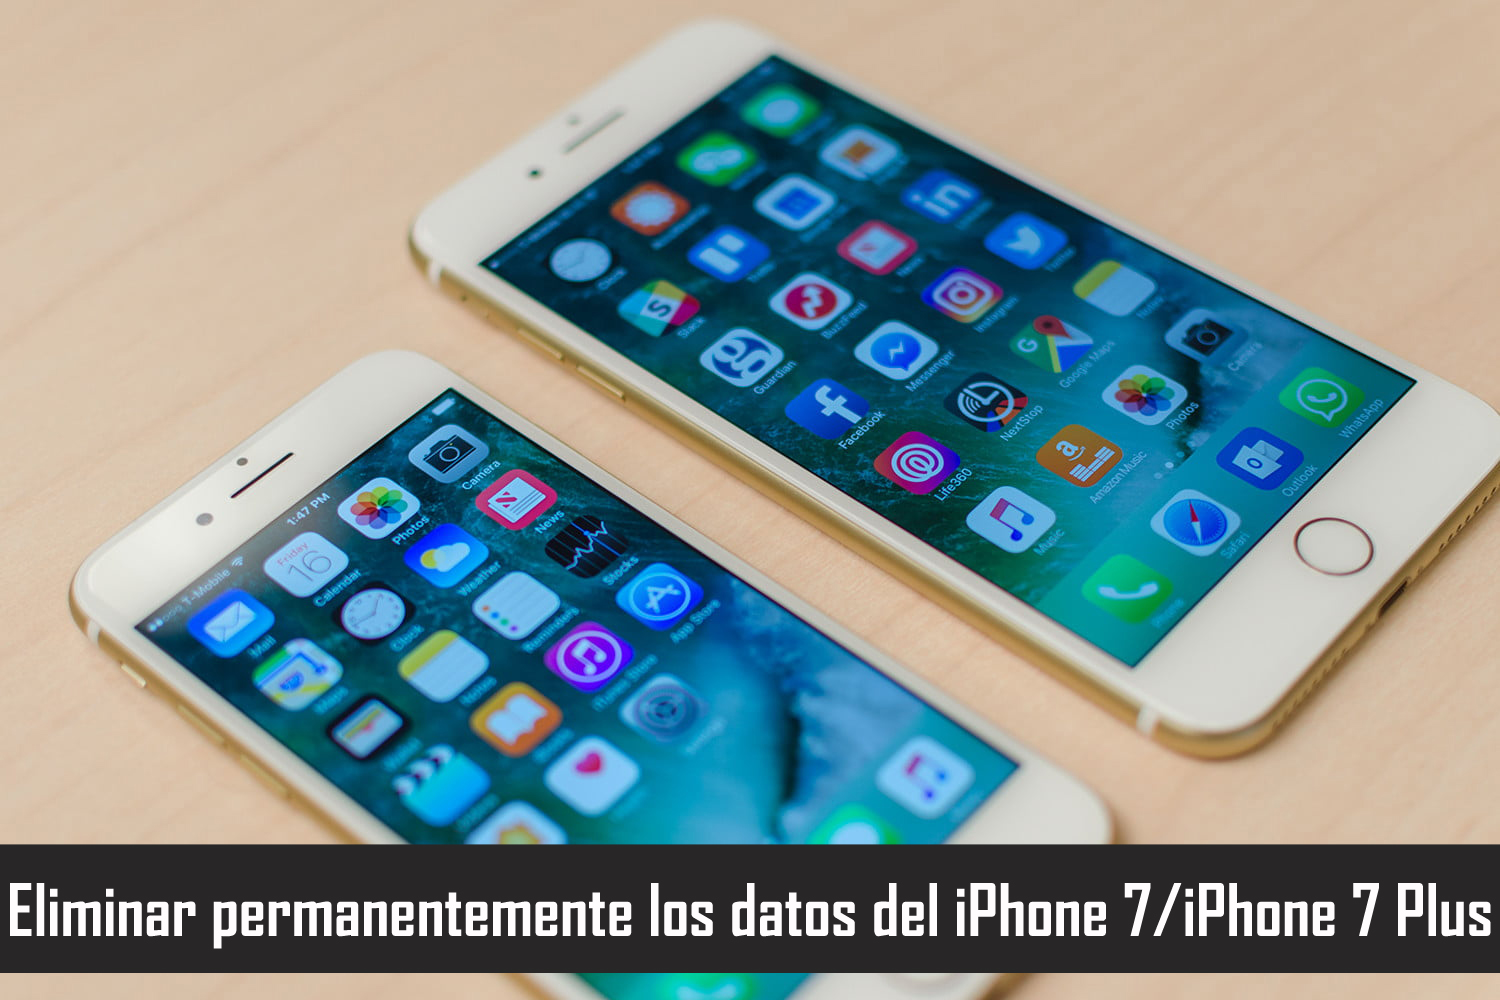 Eliminar permanentemente los datos del iPhone 7 & iPhone 7 Plus